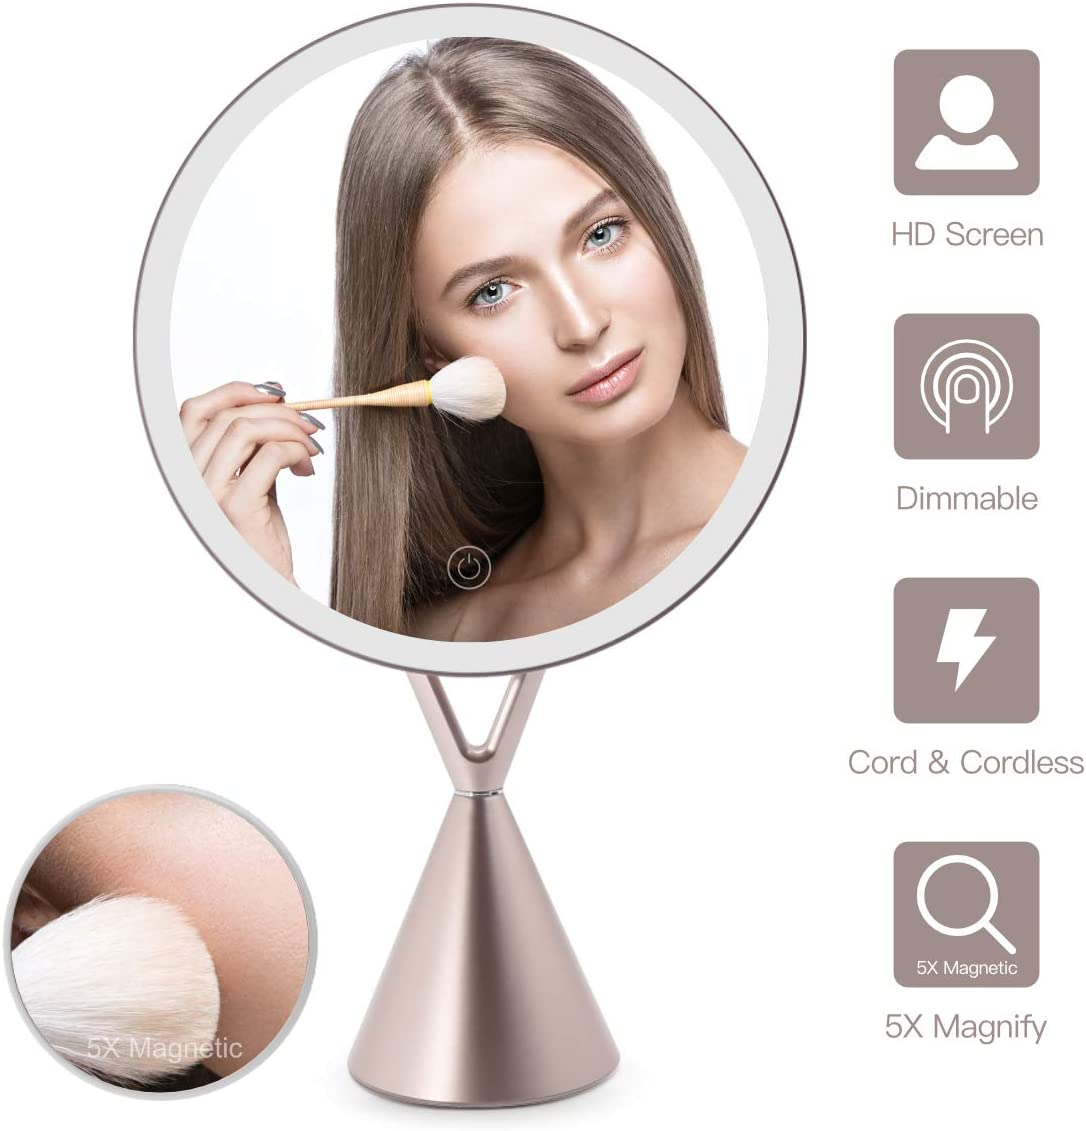 FASCINATE Magnetic Lighted Makeup Mirror, Dimmable Natural Light Vanity Makeup Mirror 45 Rotable Light Up Mirror 30 LED Touch Screen with Mirror 5X Magnification Round Cord Cordless Rose Gold